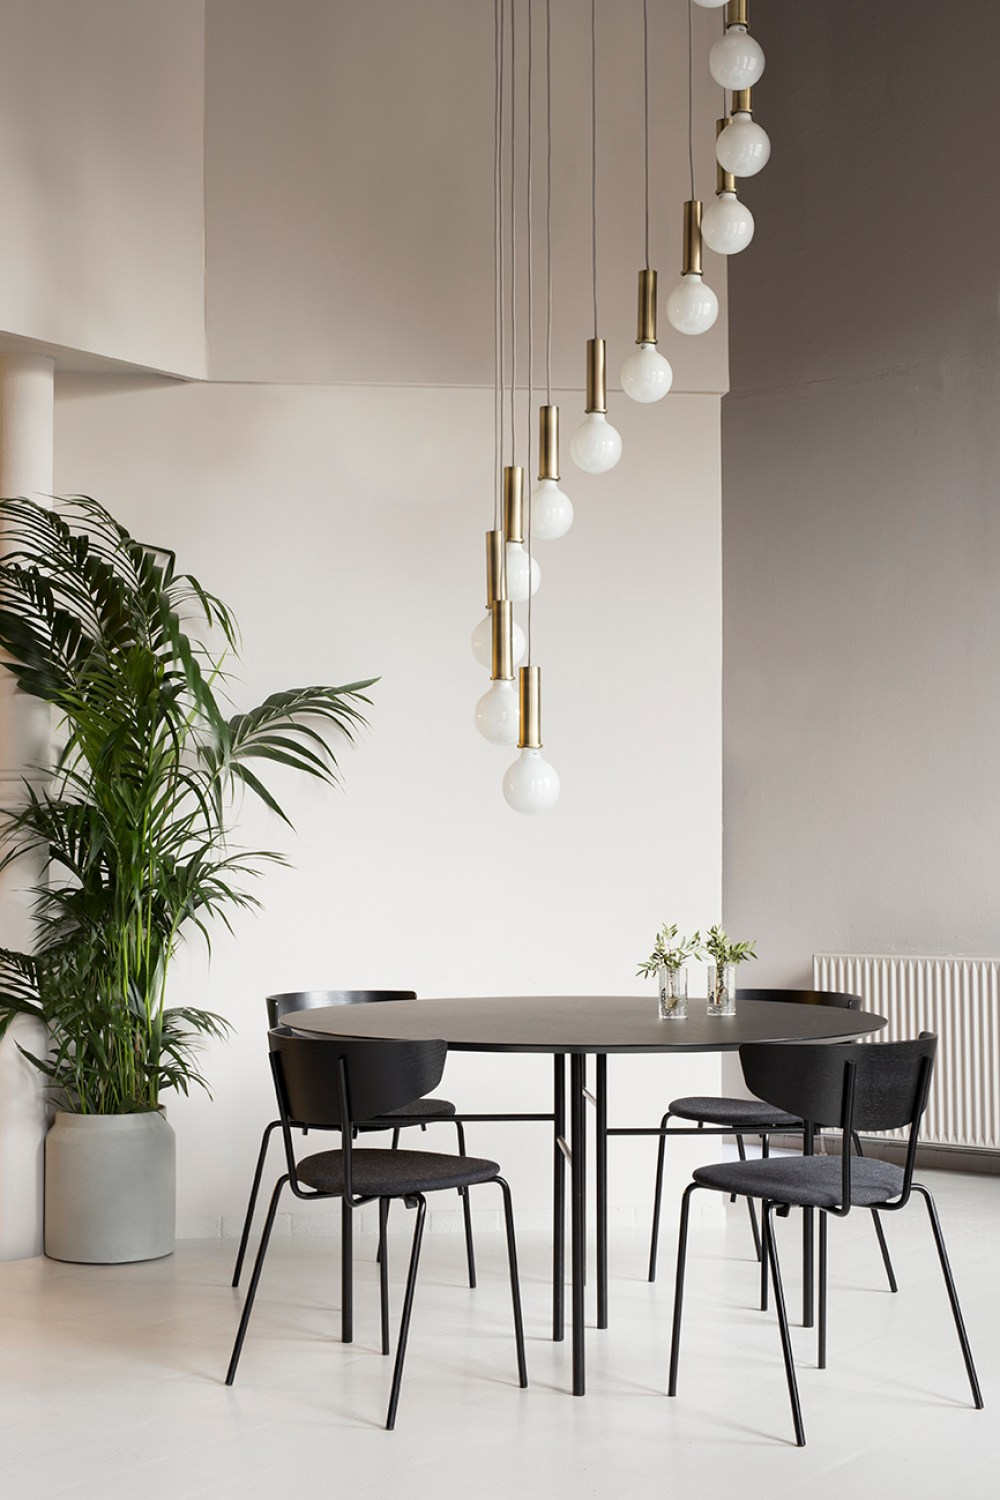 Ferm Living design Copenhagen's Asian fusion restaurant IBU